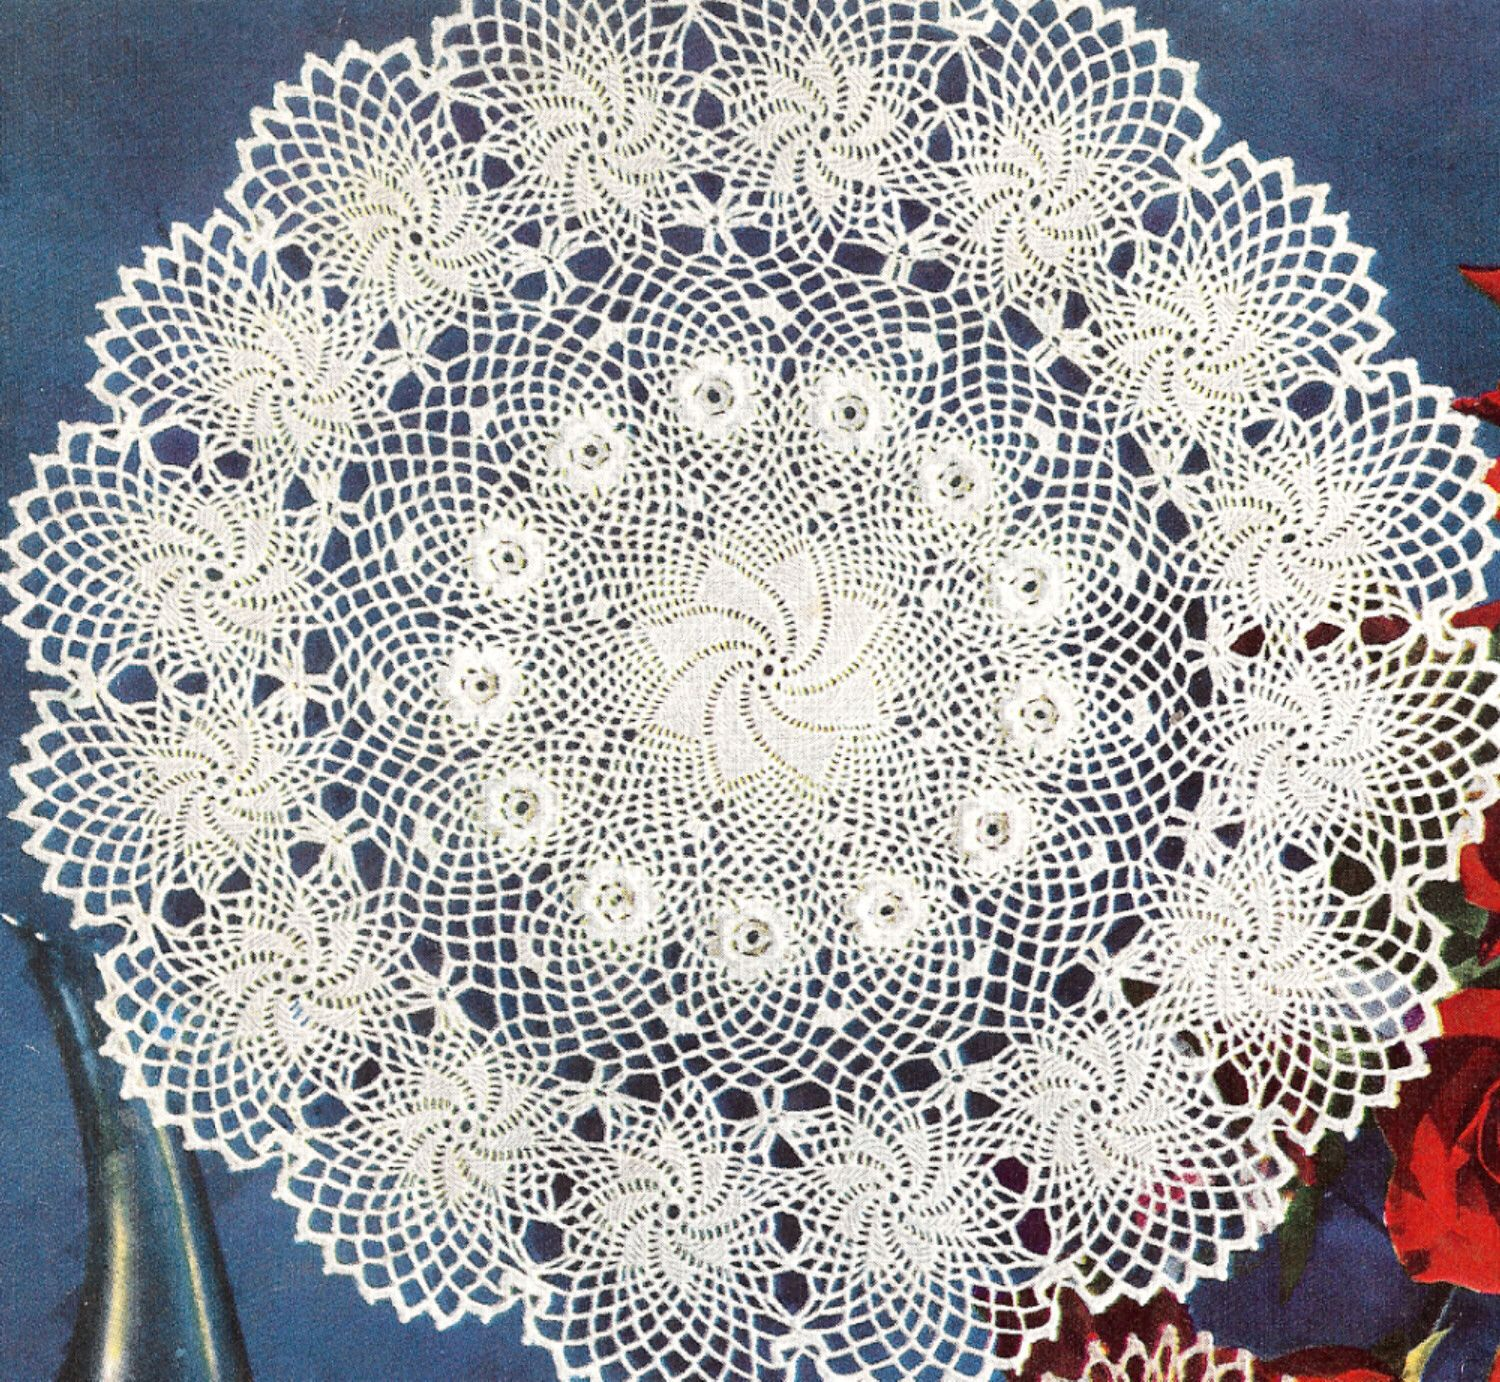 Vintage crochet pattern to make doily erin irish rose flower vintage crochet doily pattern erin irish rose flower i made this one bankloansurffo Images